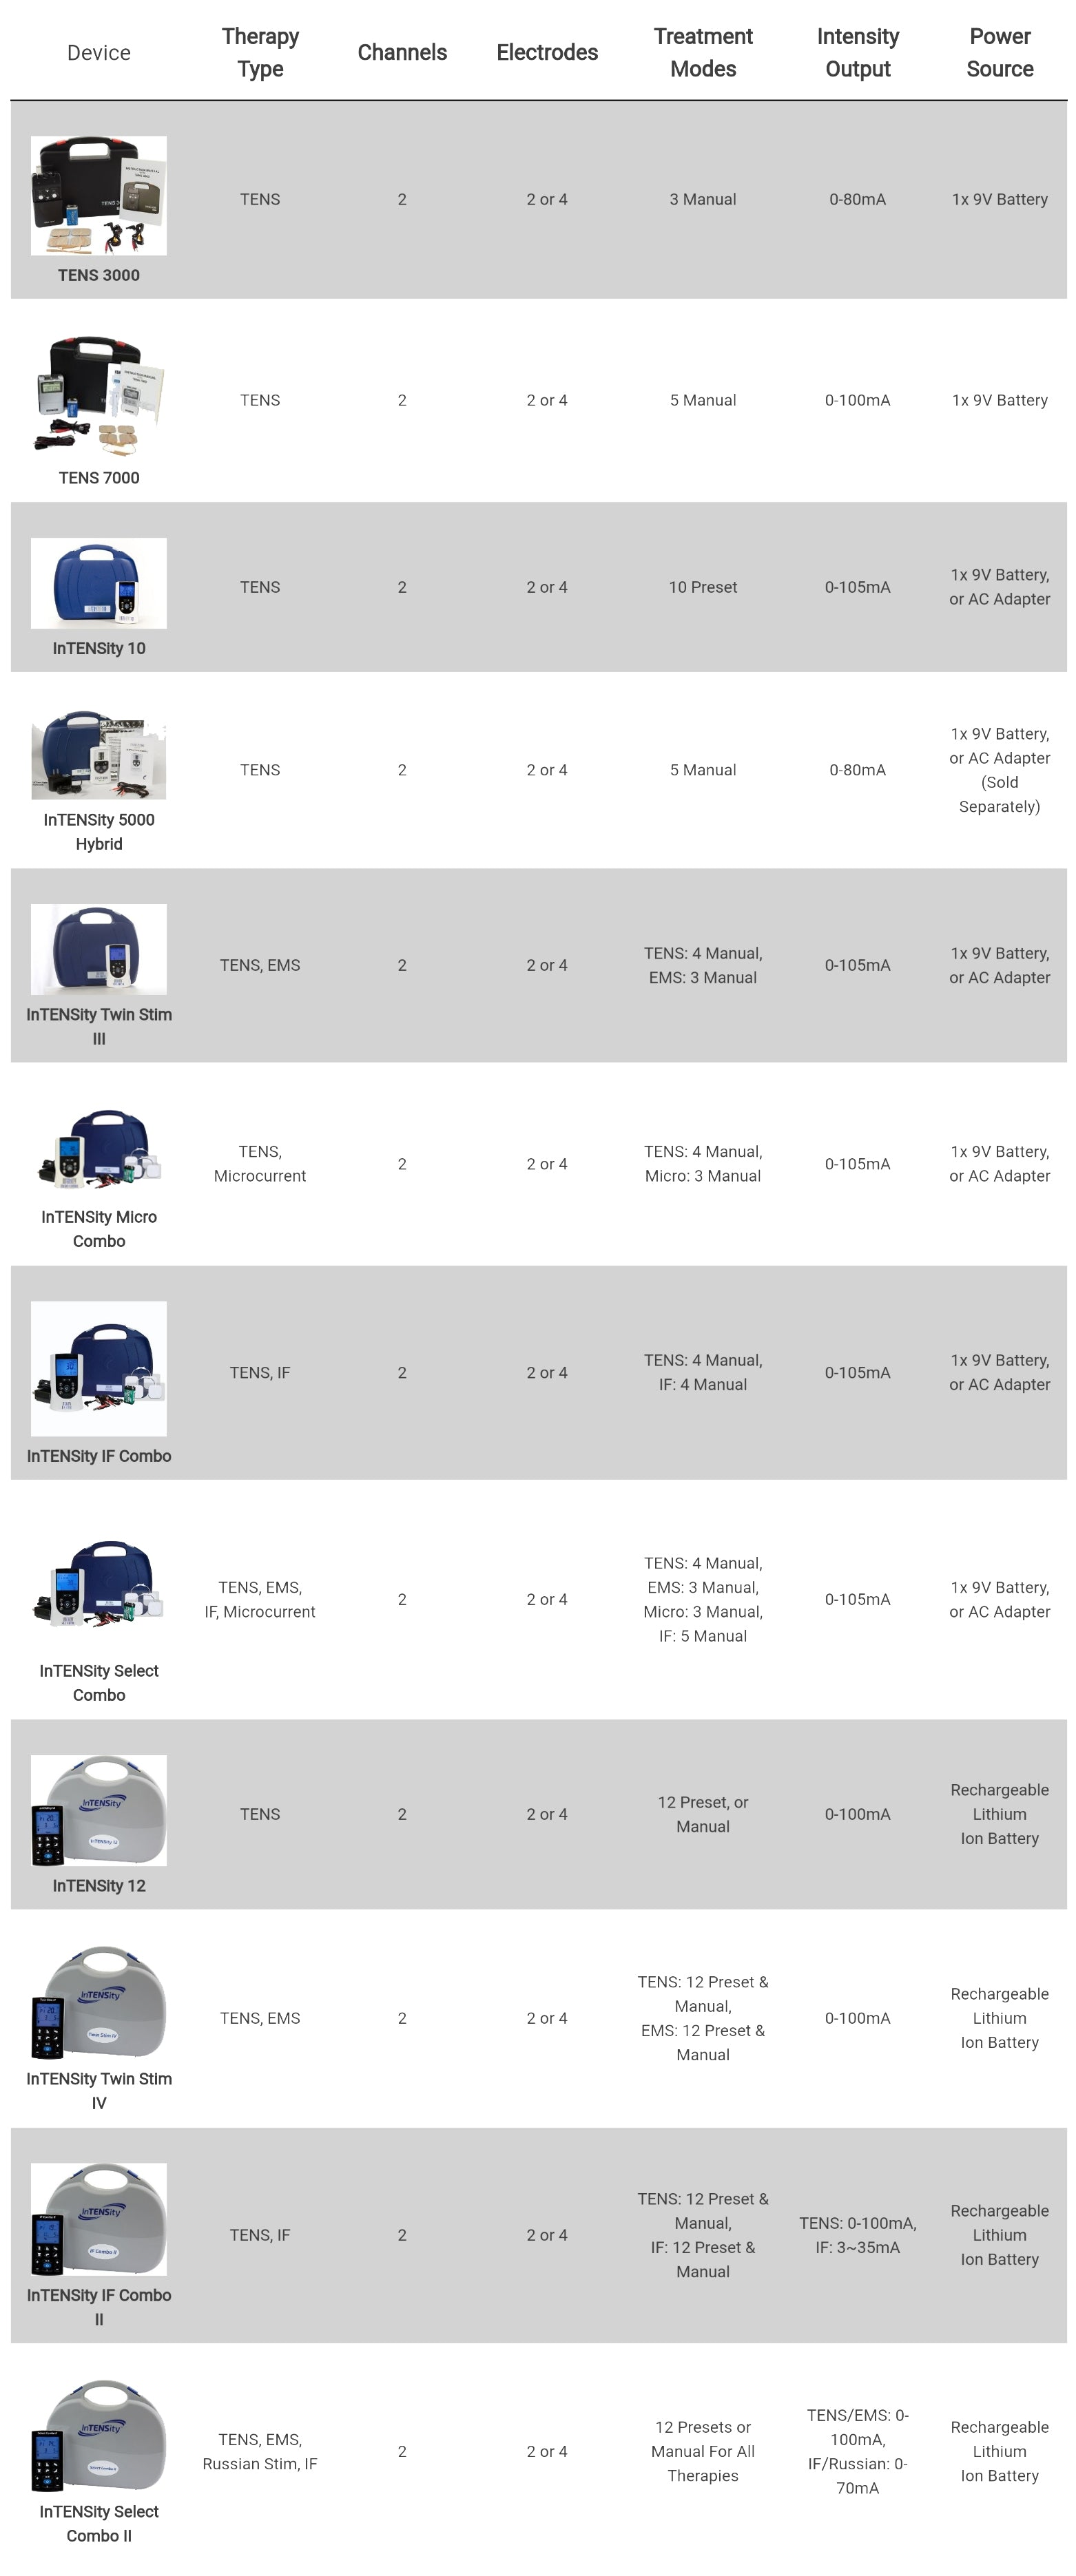 Guide To Buying TENS Units